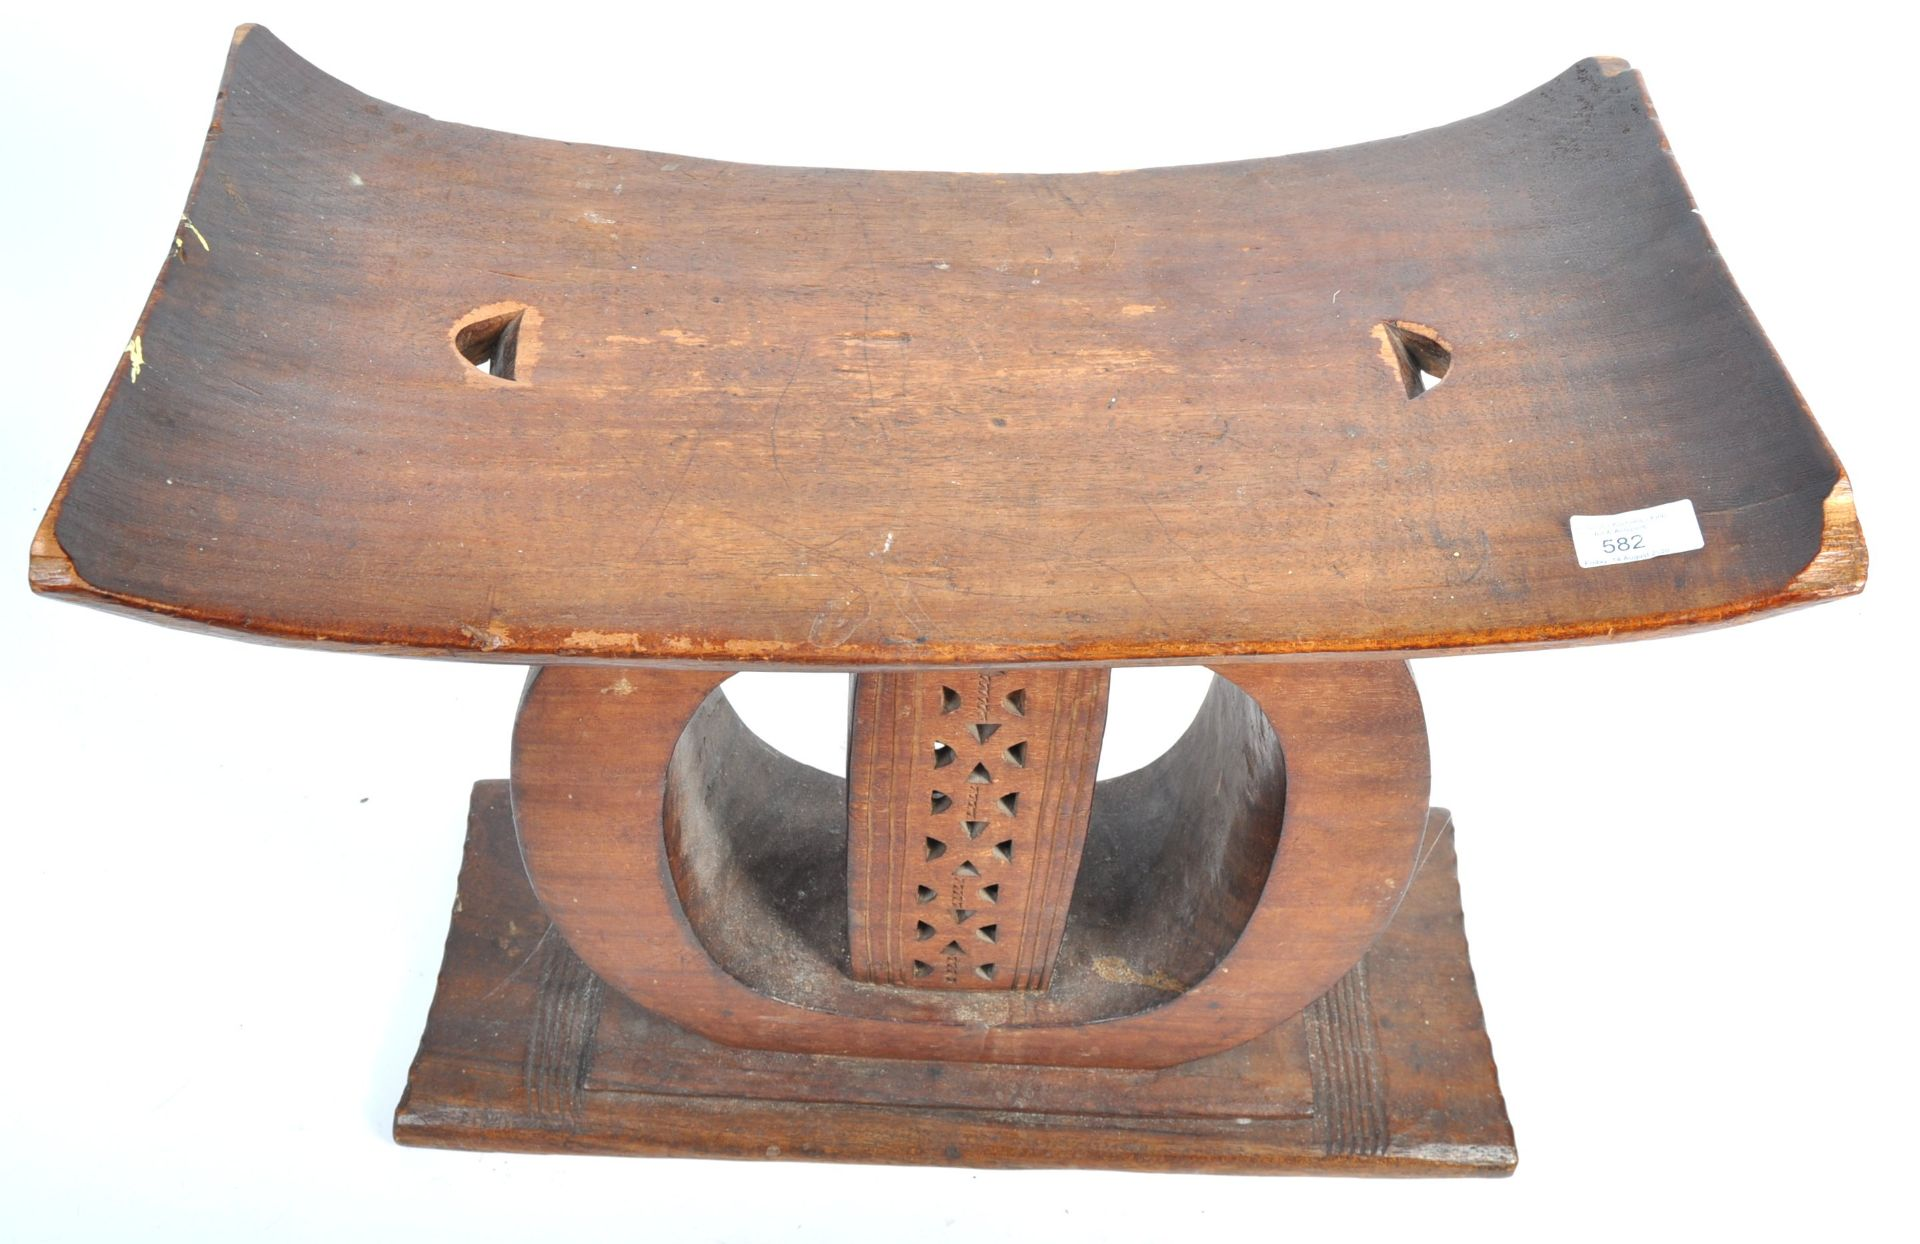 Los 582 - TRIBAL ANTIQUITIES - EARLY 20TH CENTURY AFRICAN ASHANTI STOOL